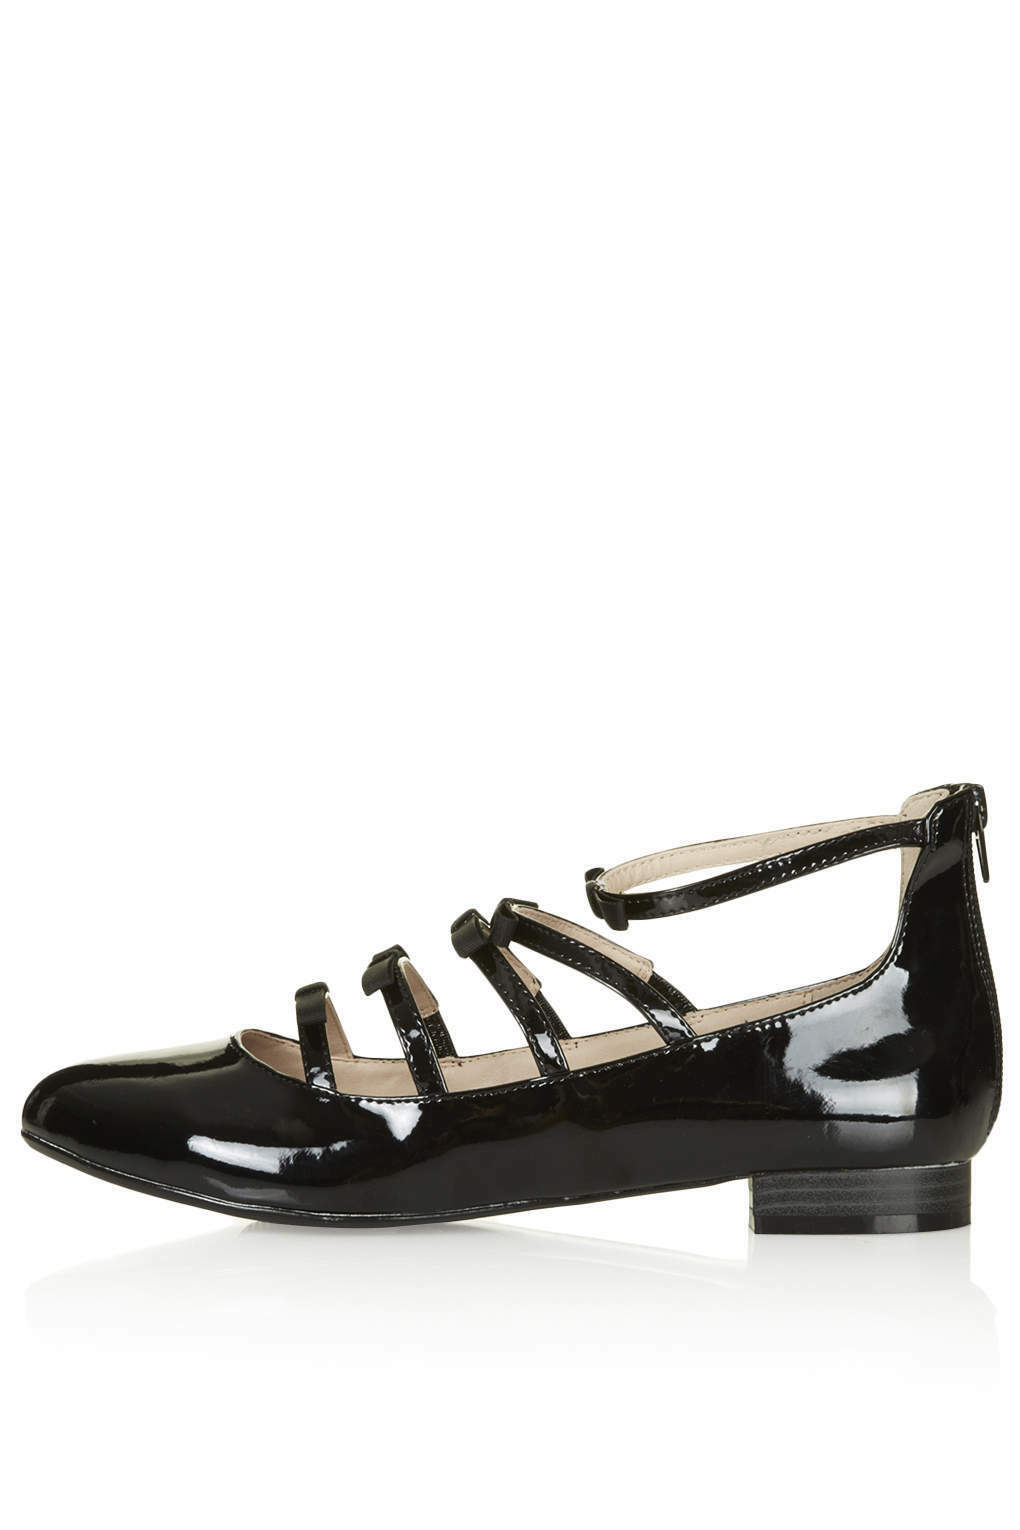 Brand New TOPSHOP SOPHIE bow shoes UK 3 in Black